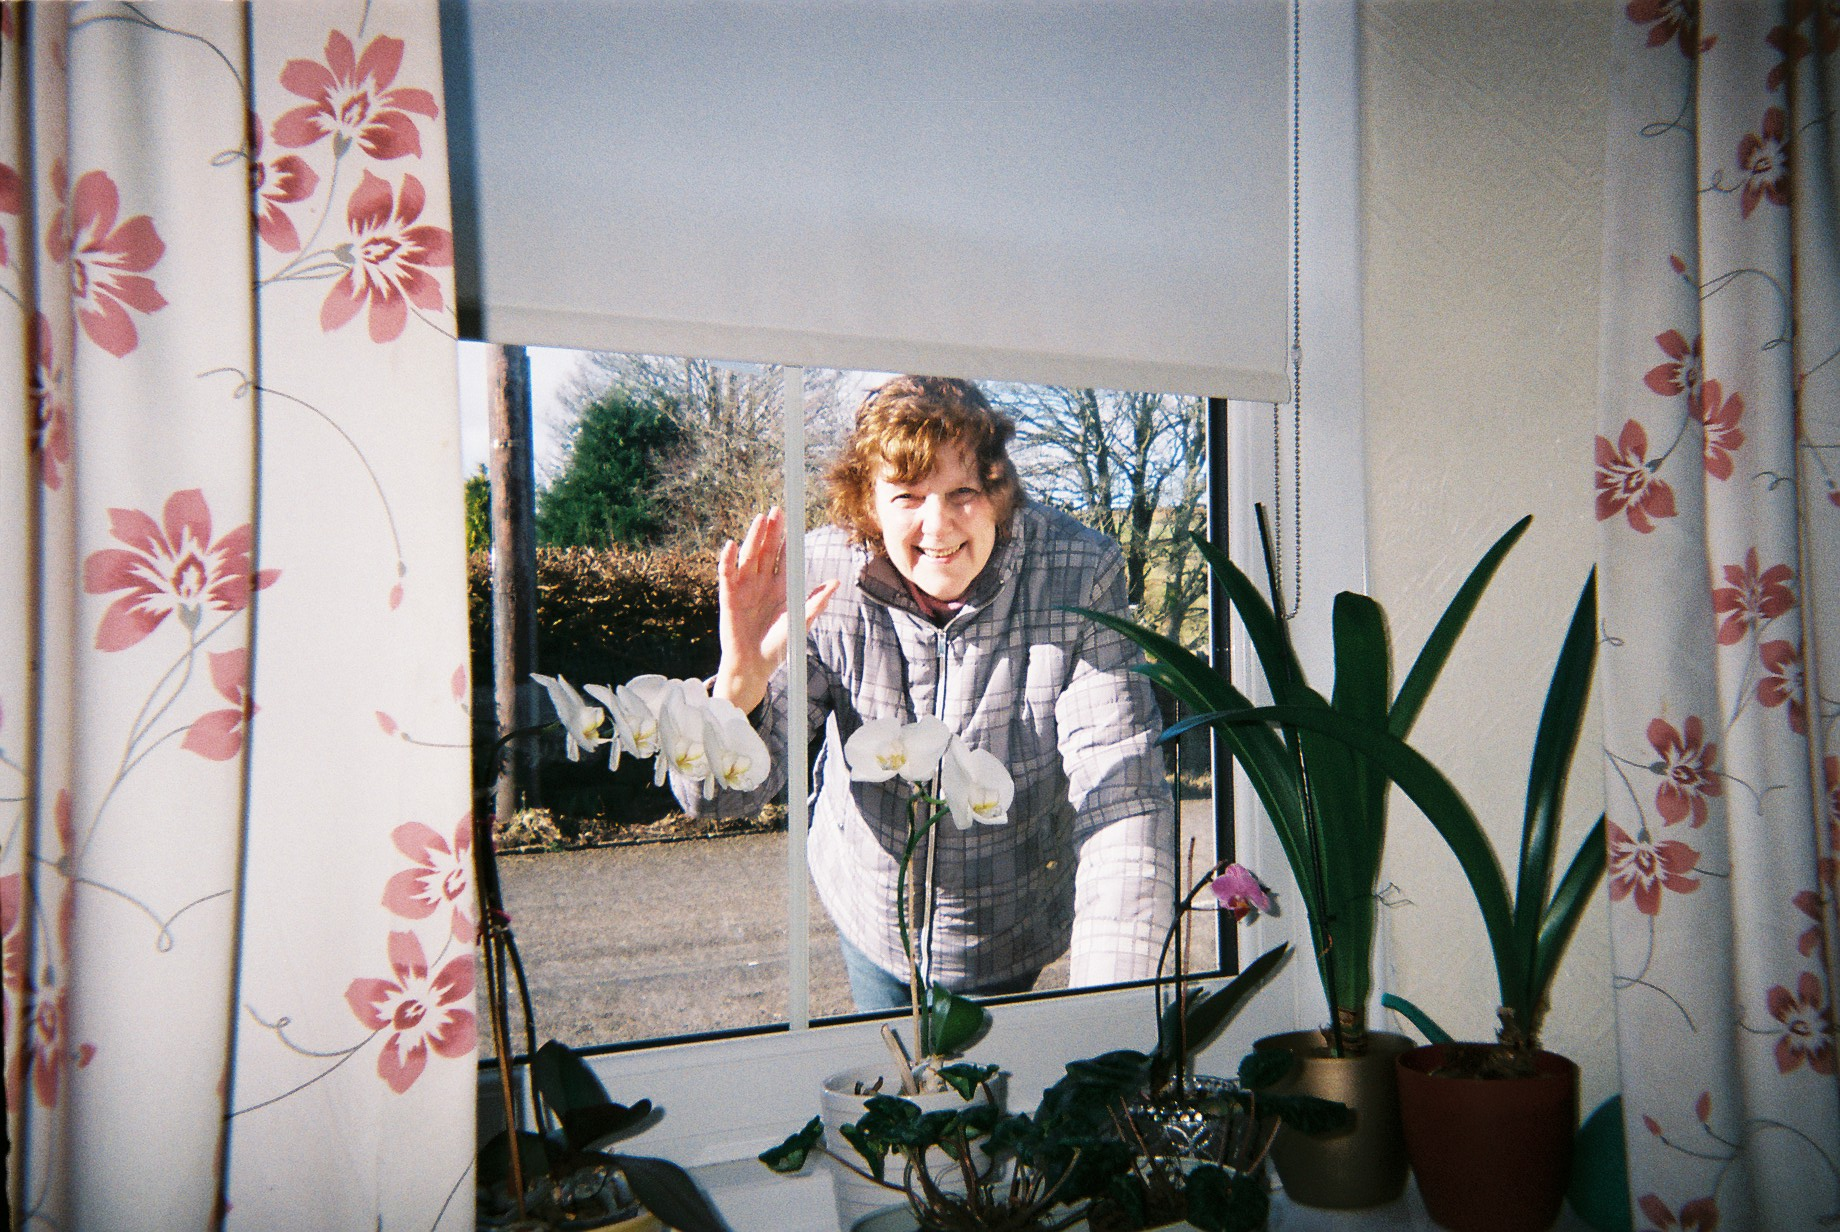 A neighbour smiles and waves through a curtained window